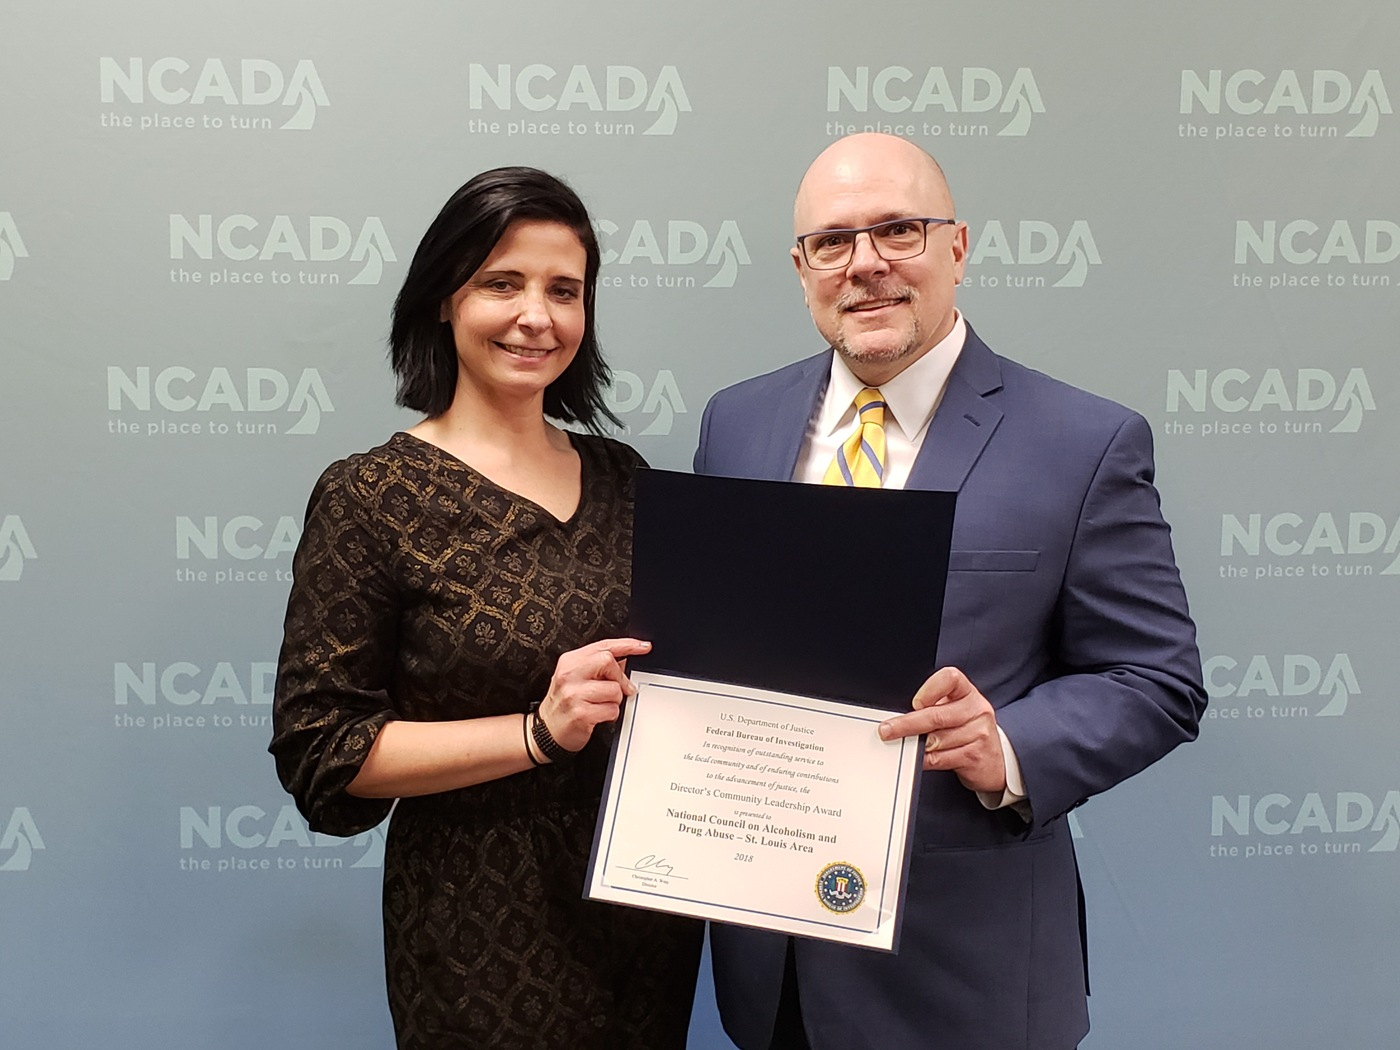 NCADA – St. Louis Executive Director Nichole Dawsey and FBI St. Louis Special Agent in Charge Richard Quinn